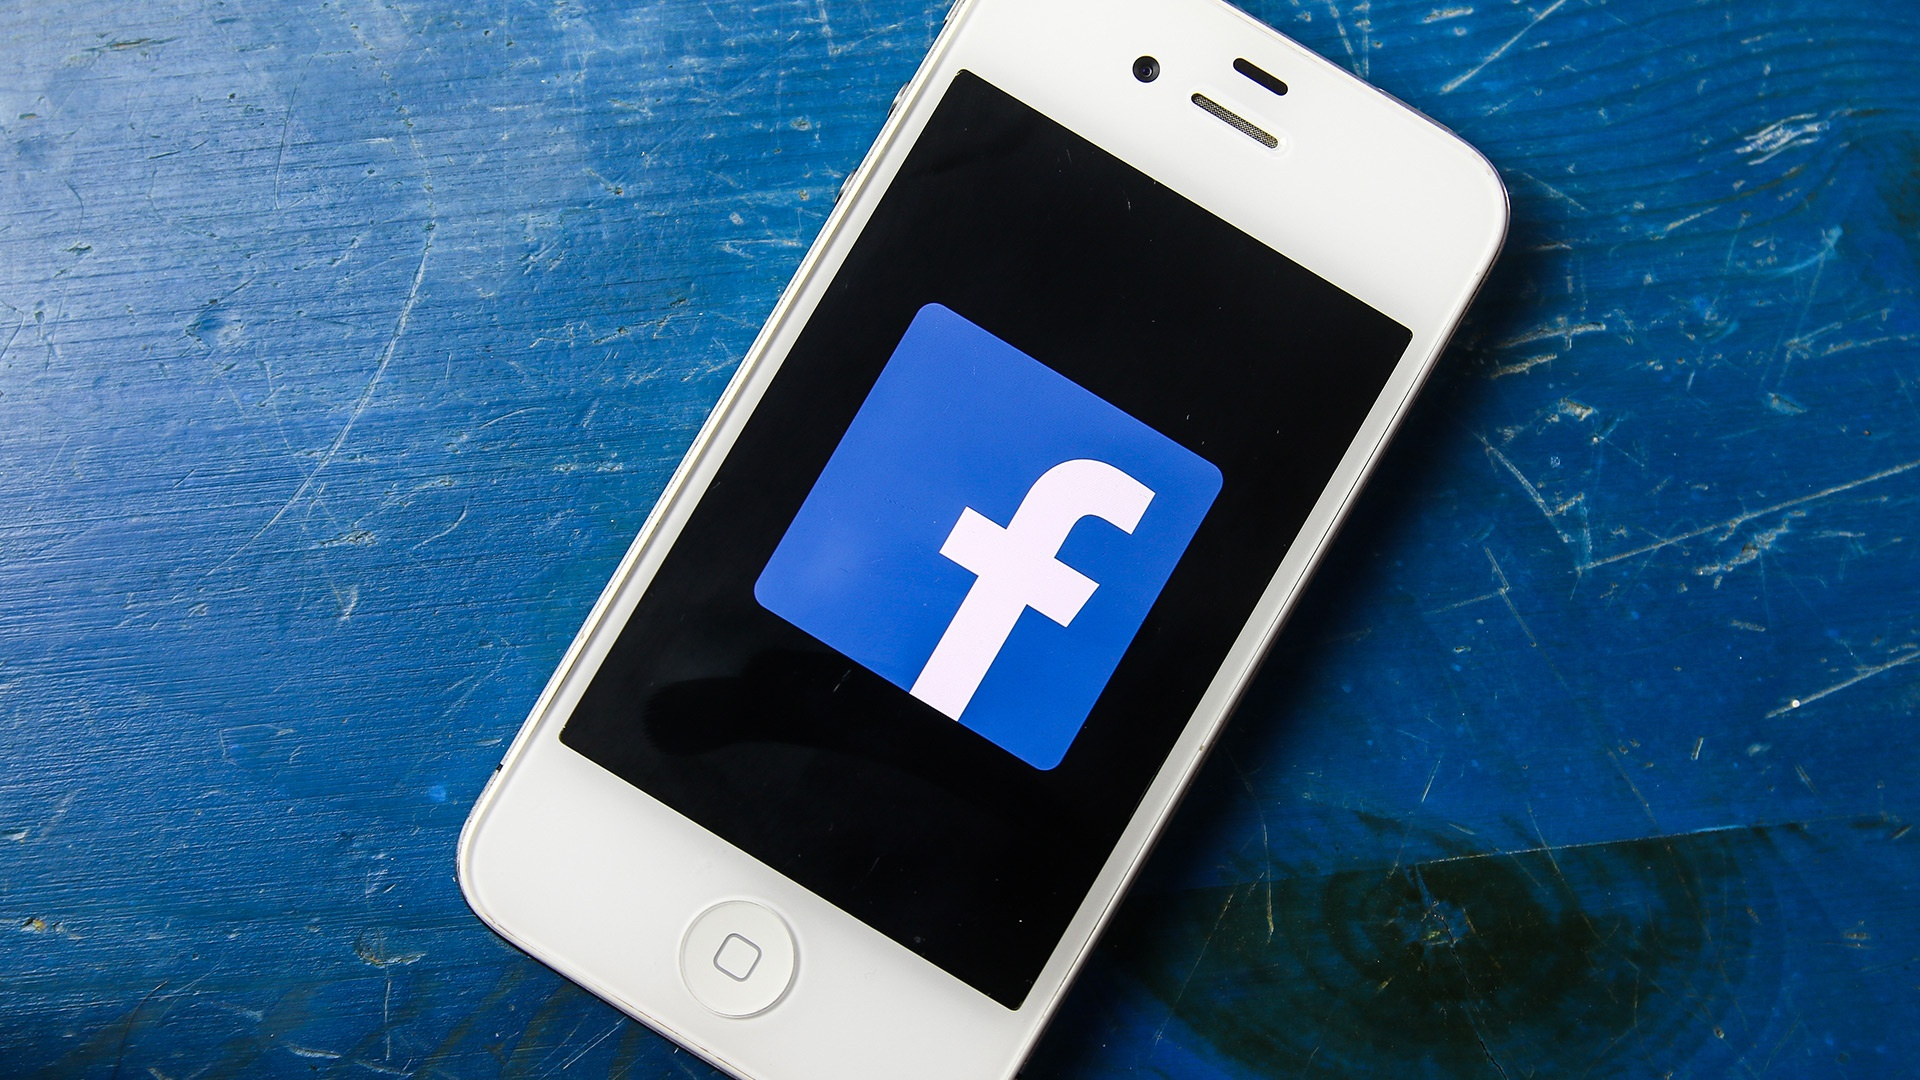 facebook-mobile-iphone-smartphone1-ss-1920.jpg